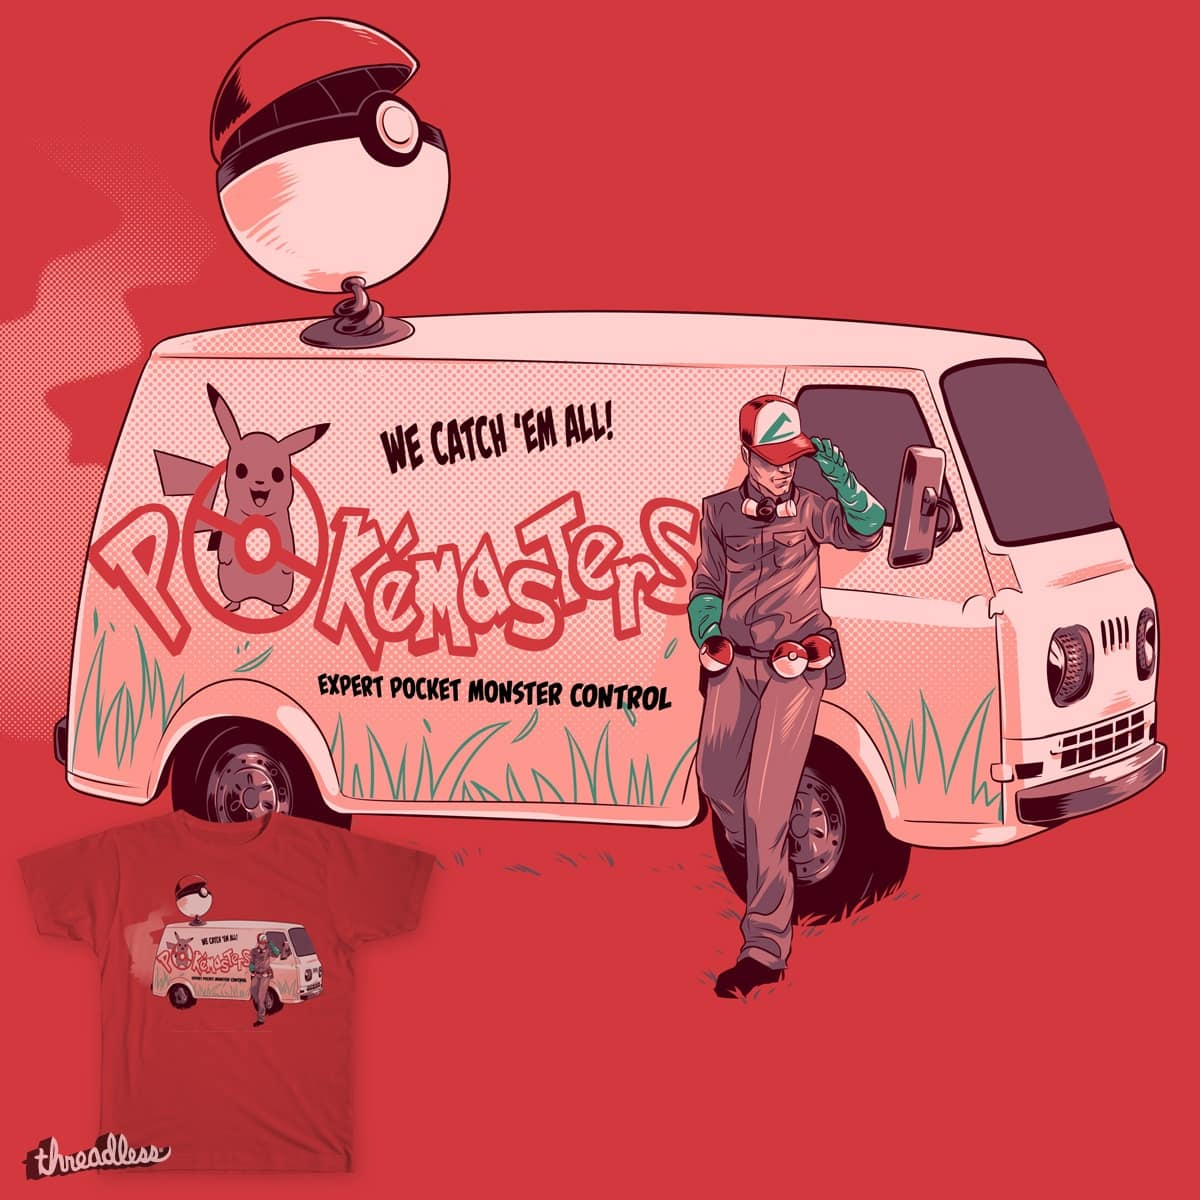 Catch em all by whiskysteaks on Threadless